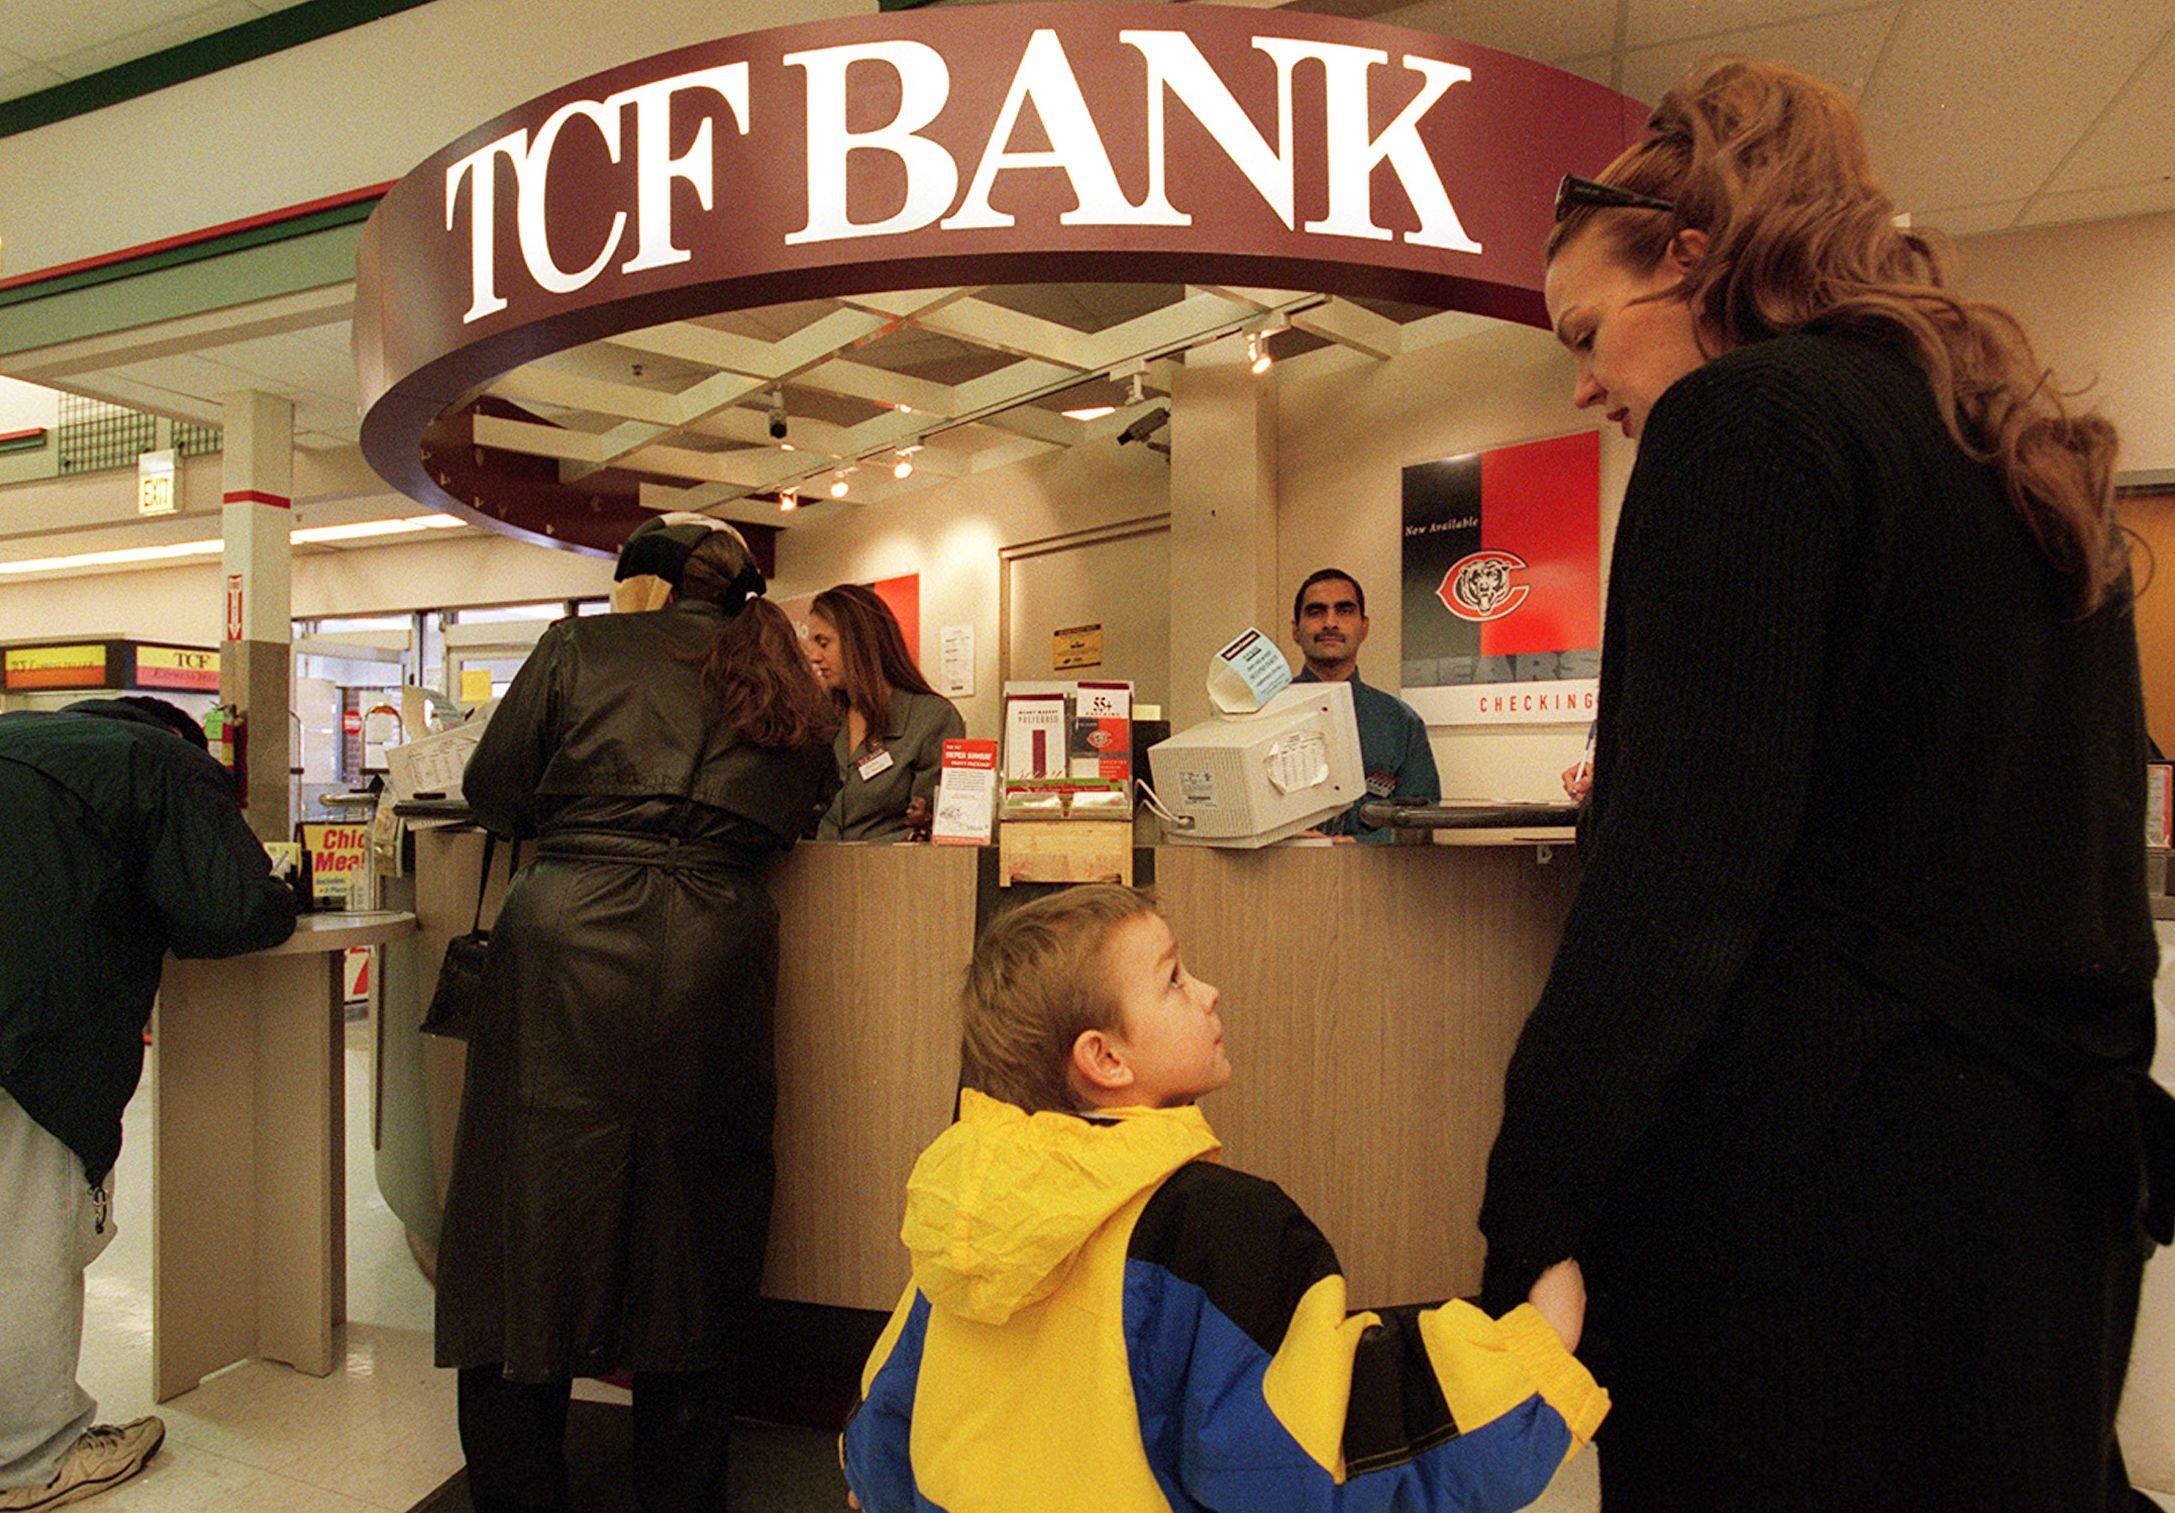 Customers wait their turn at the TCF Bank inside a Jewel-Osco in Arlington Heights.